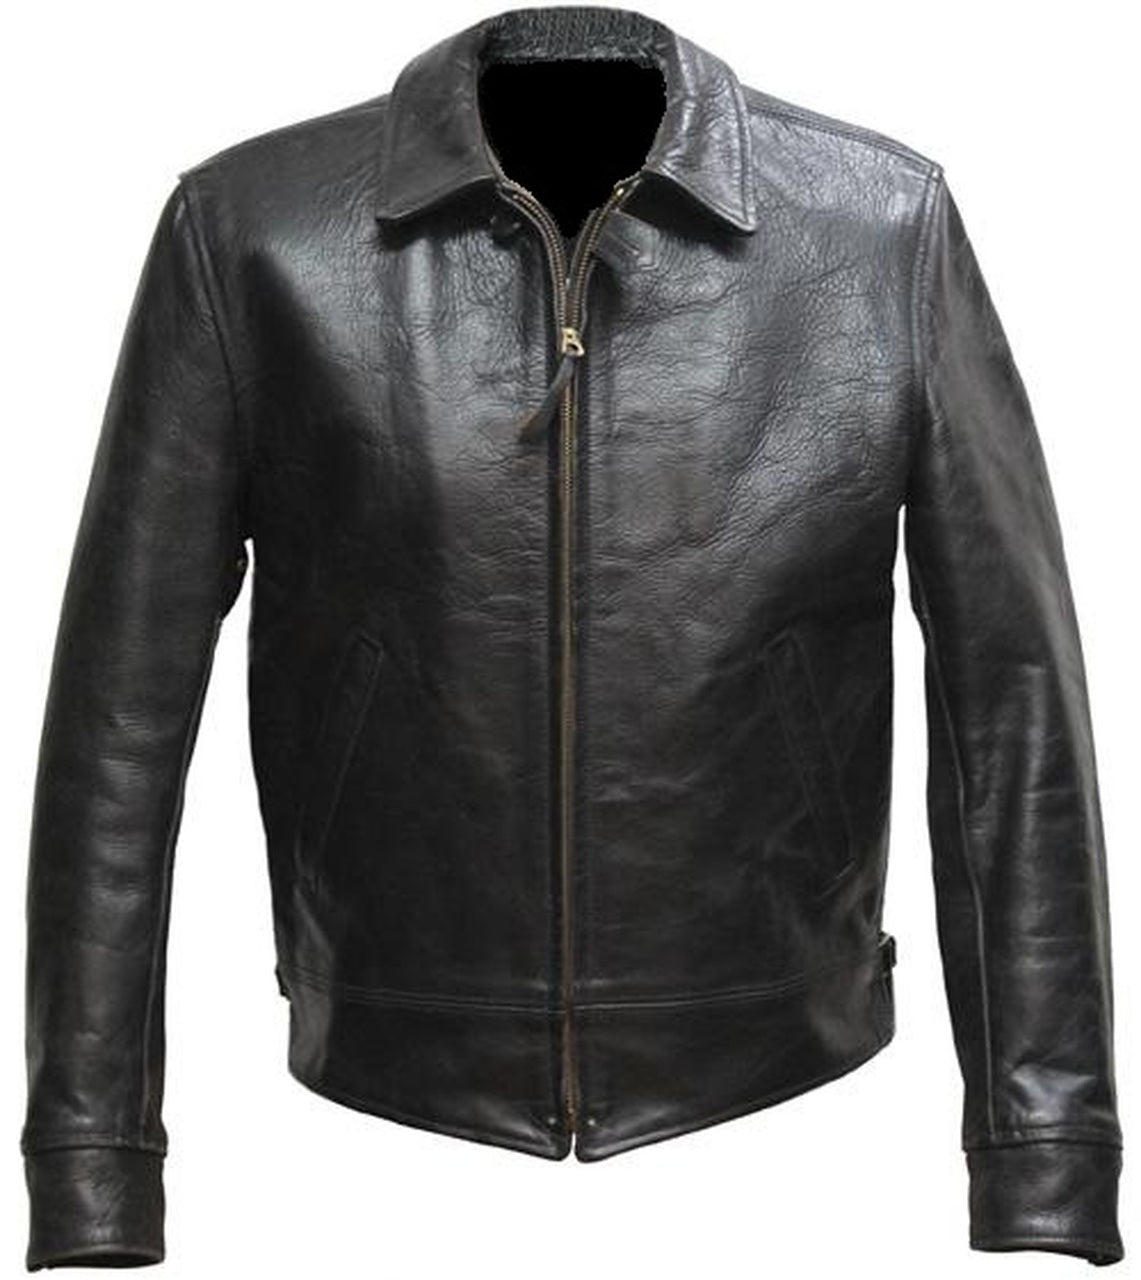 Men's Designer Casual Style Black Leather Jacket